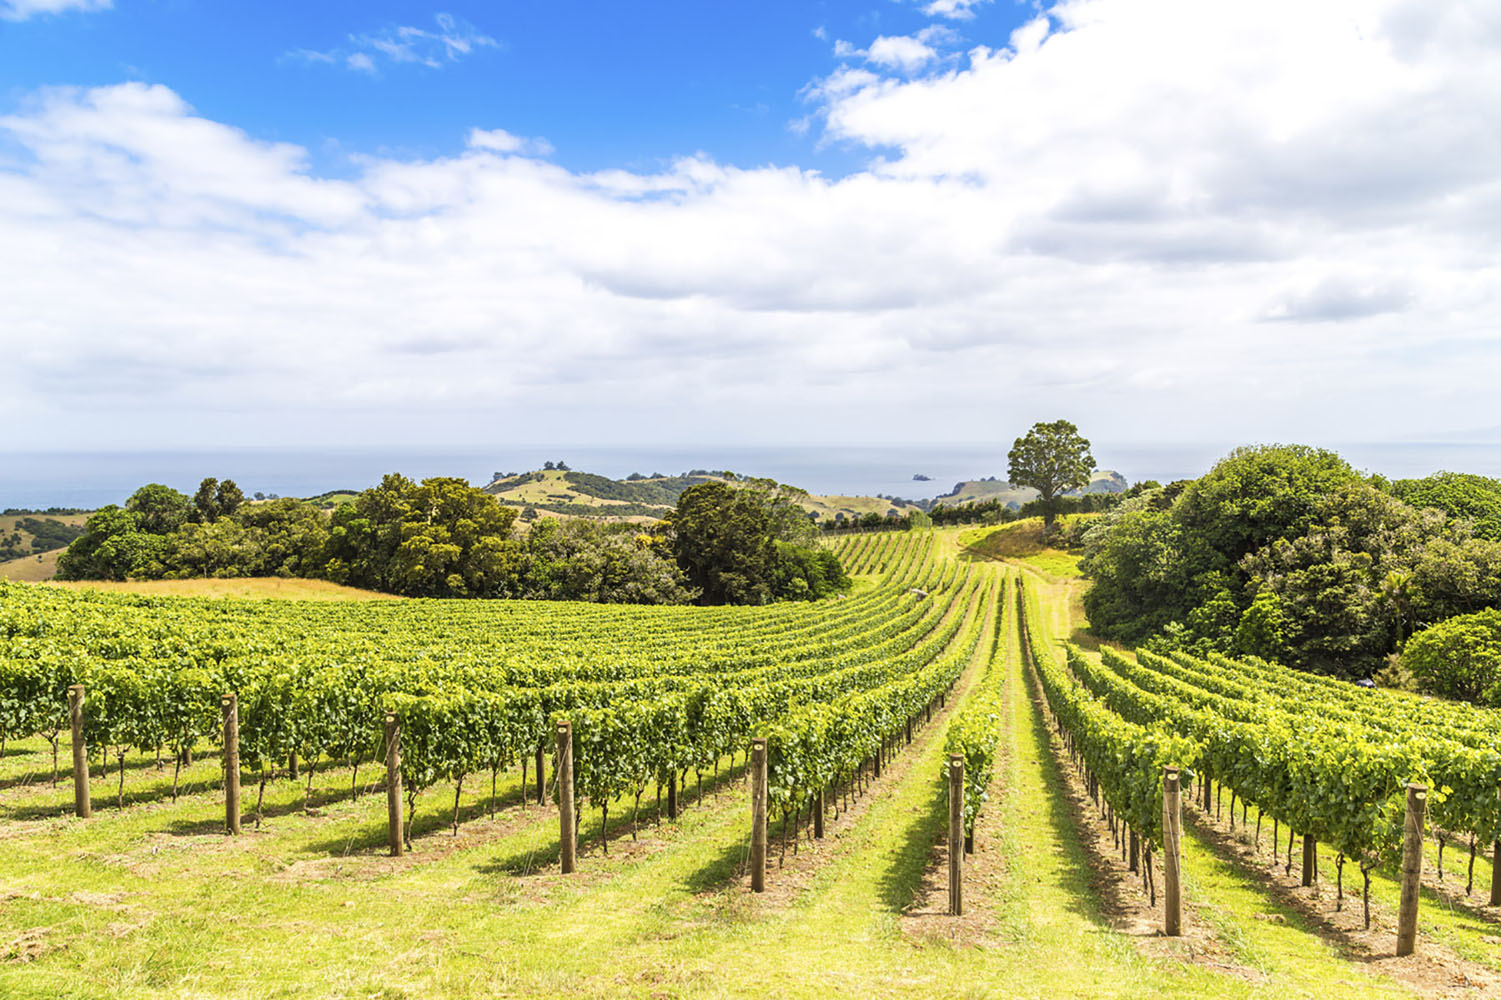 Vineyard in New Zealand.